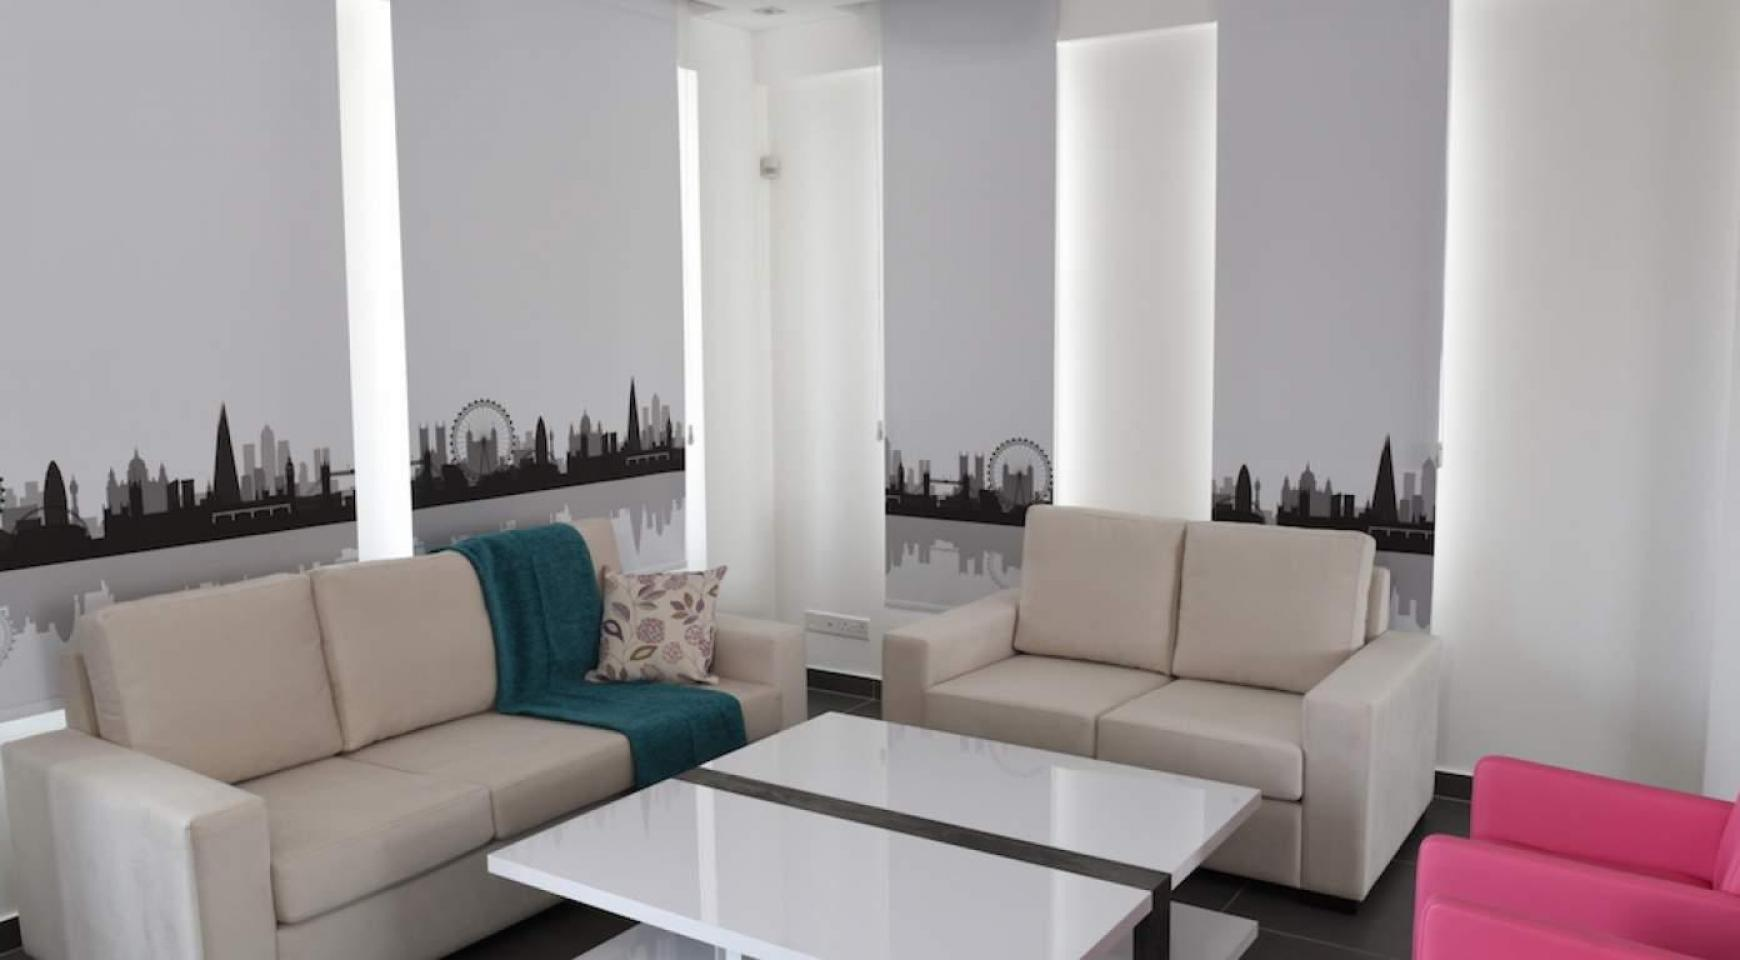 4 Bedroom House in Leivadia Area - 15